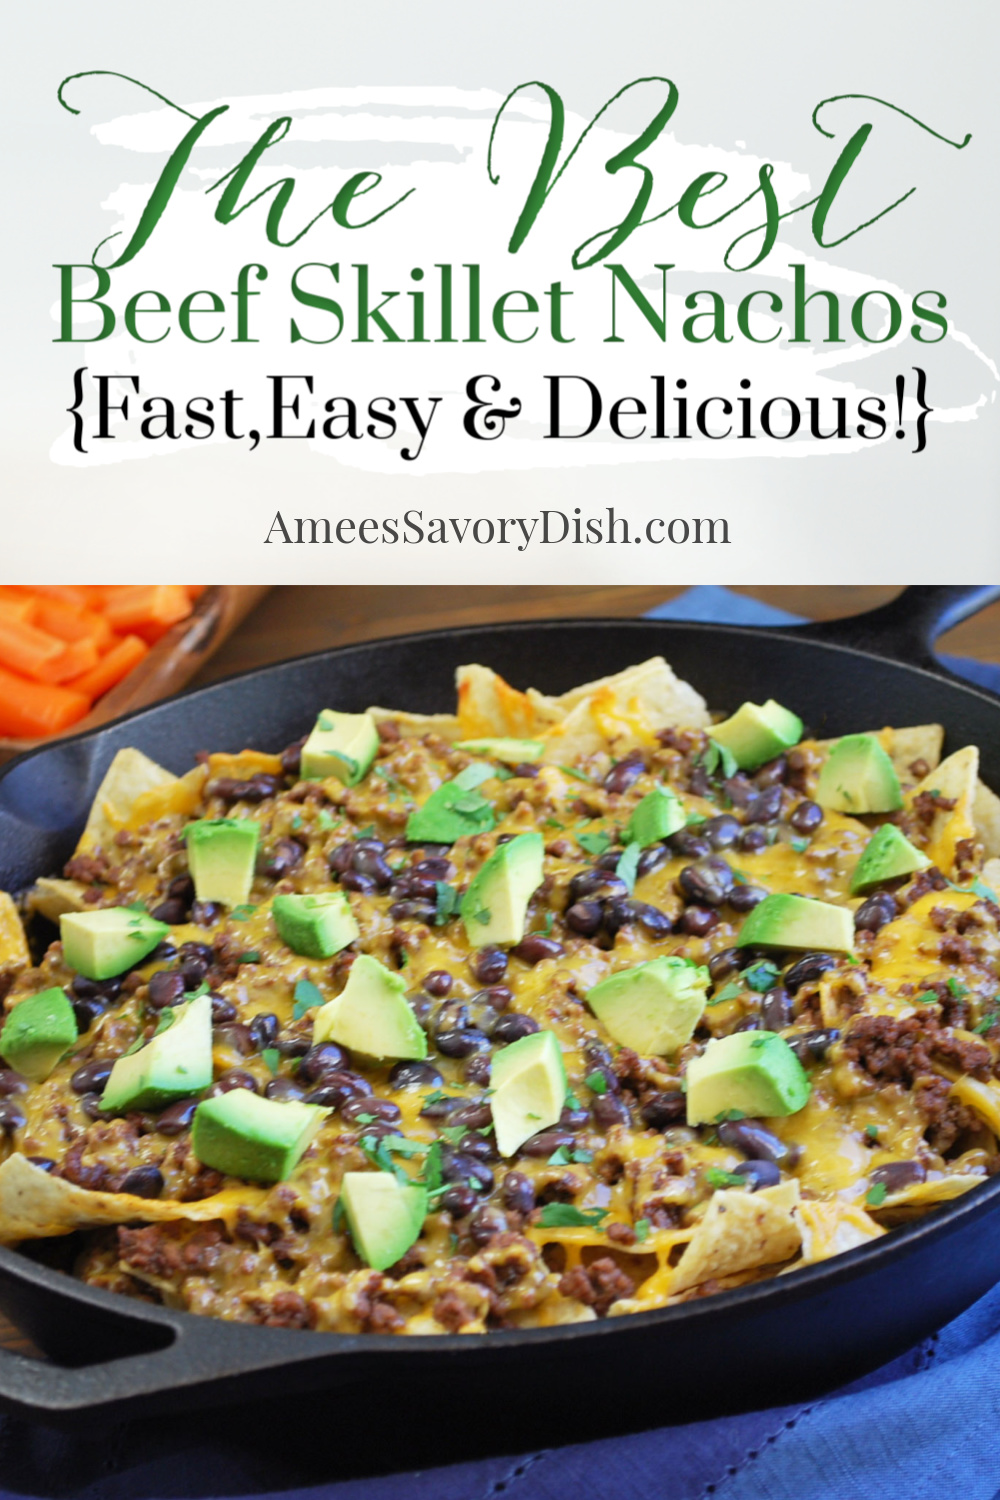 An easy and delicious oven-baked skillet nachos recipe made with tortilla chips, black beans, seasoned ground beef, and shredded cheese baked in a cast-iron skillet.  via @Ameecooks